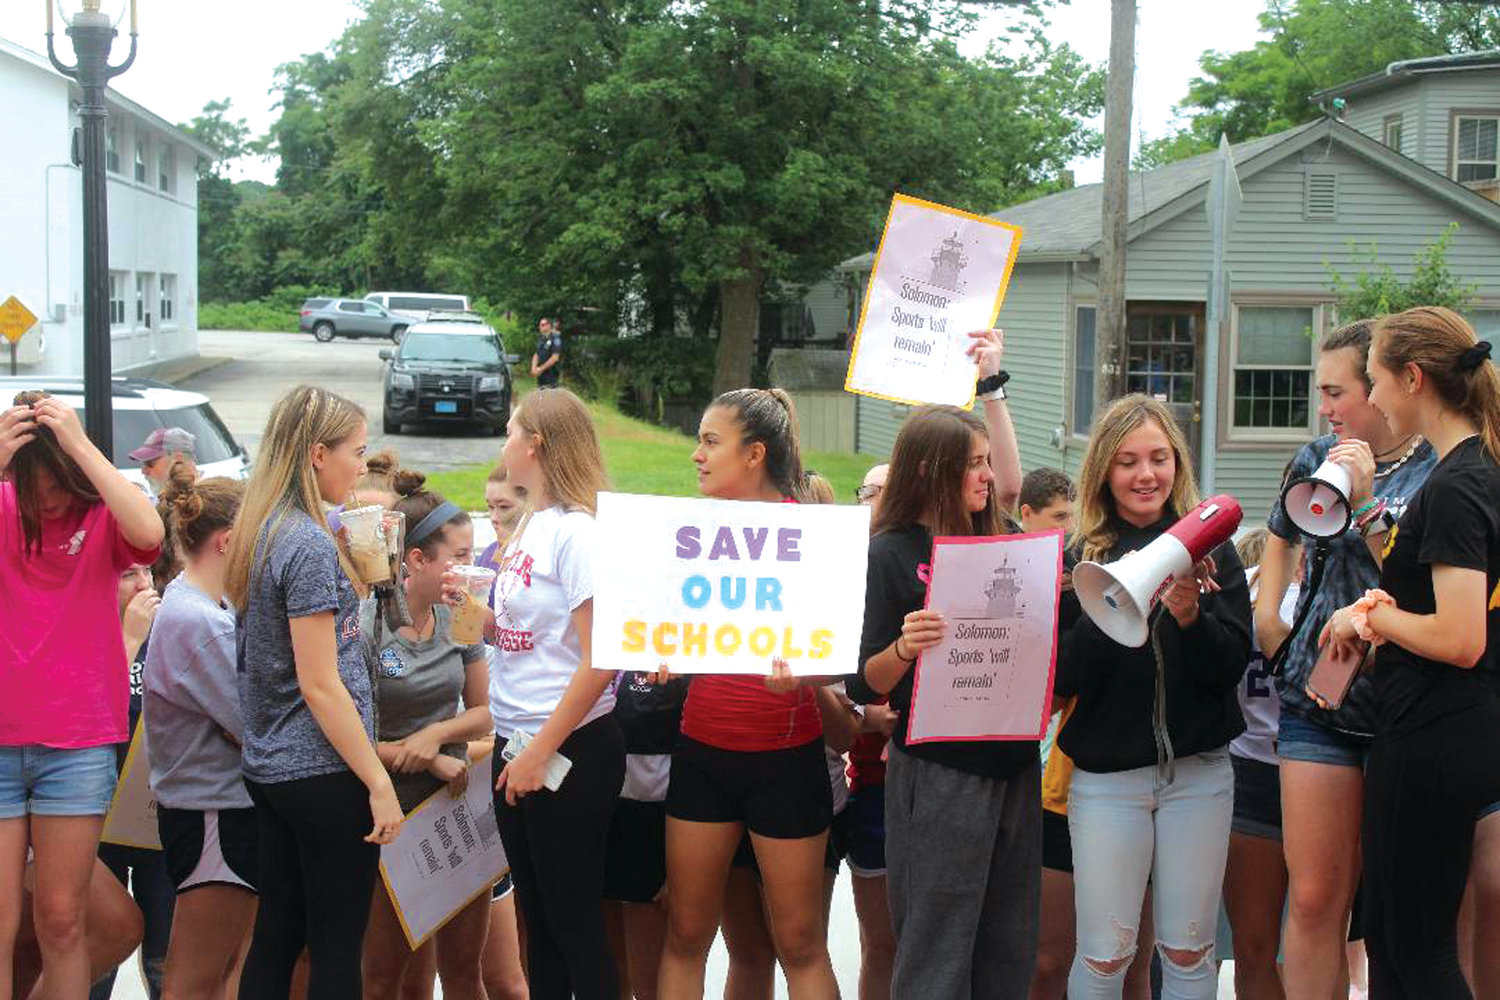 LOUD AND CLEAR: Members of the Warwick sports community gather outside of Warwick City Hall on Wednesday morning to protest the recently-approved budget cuts proposed by the Warwick School Committee, which included after school clubs and sports.